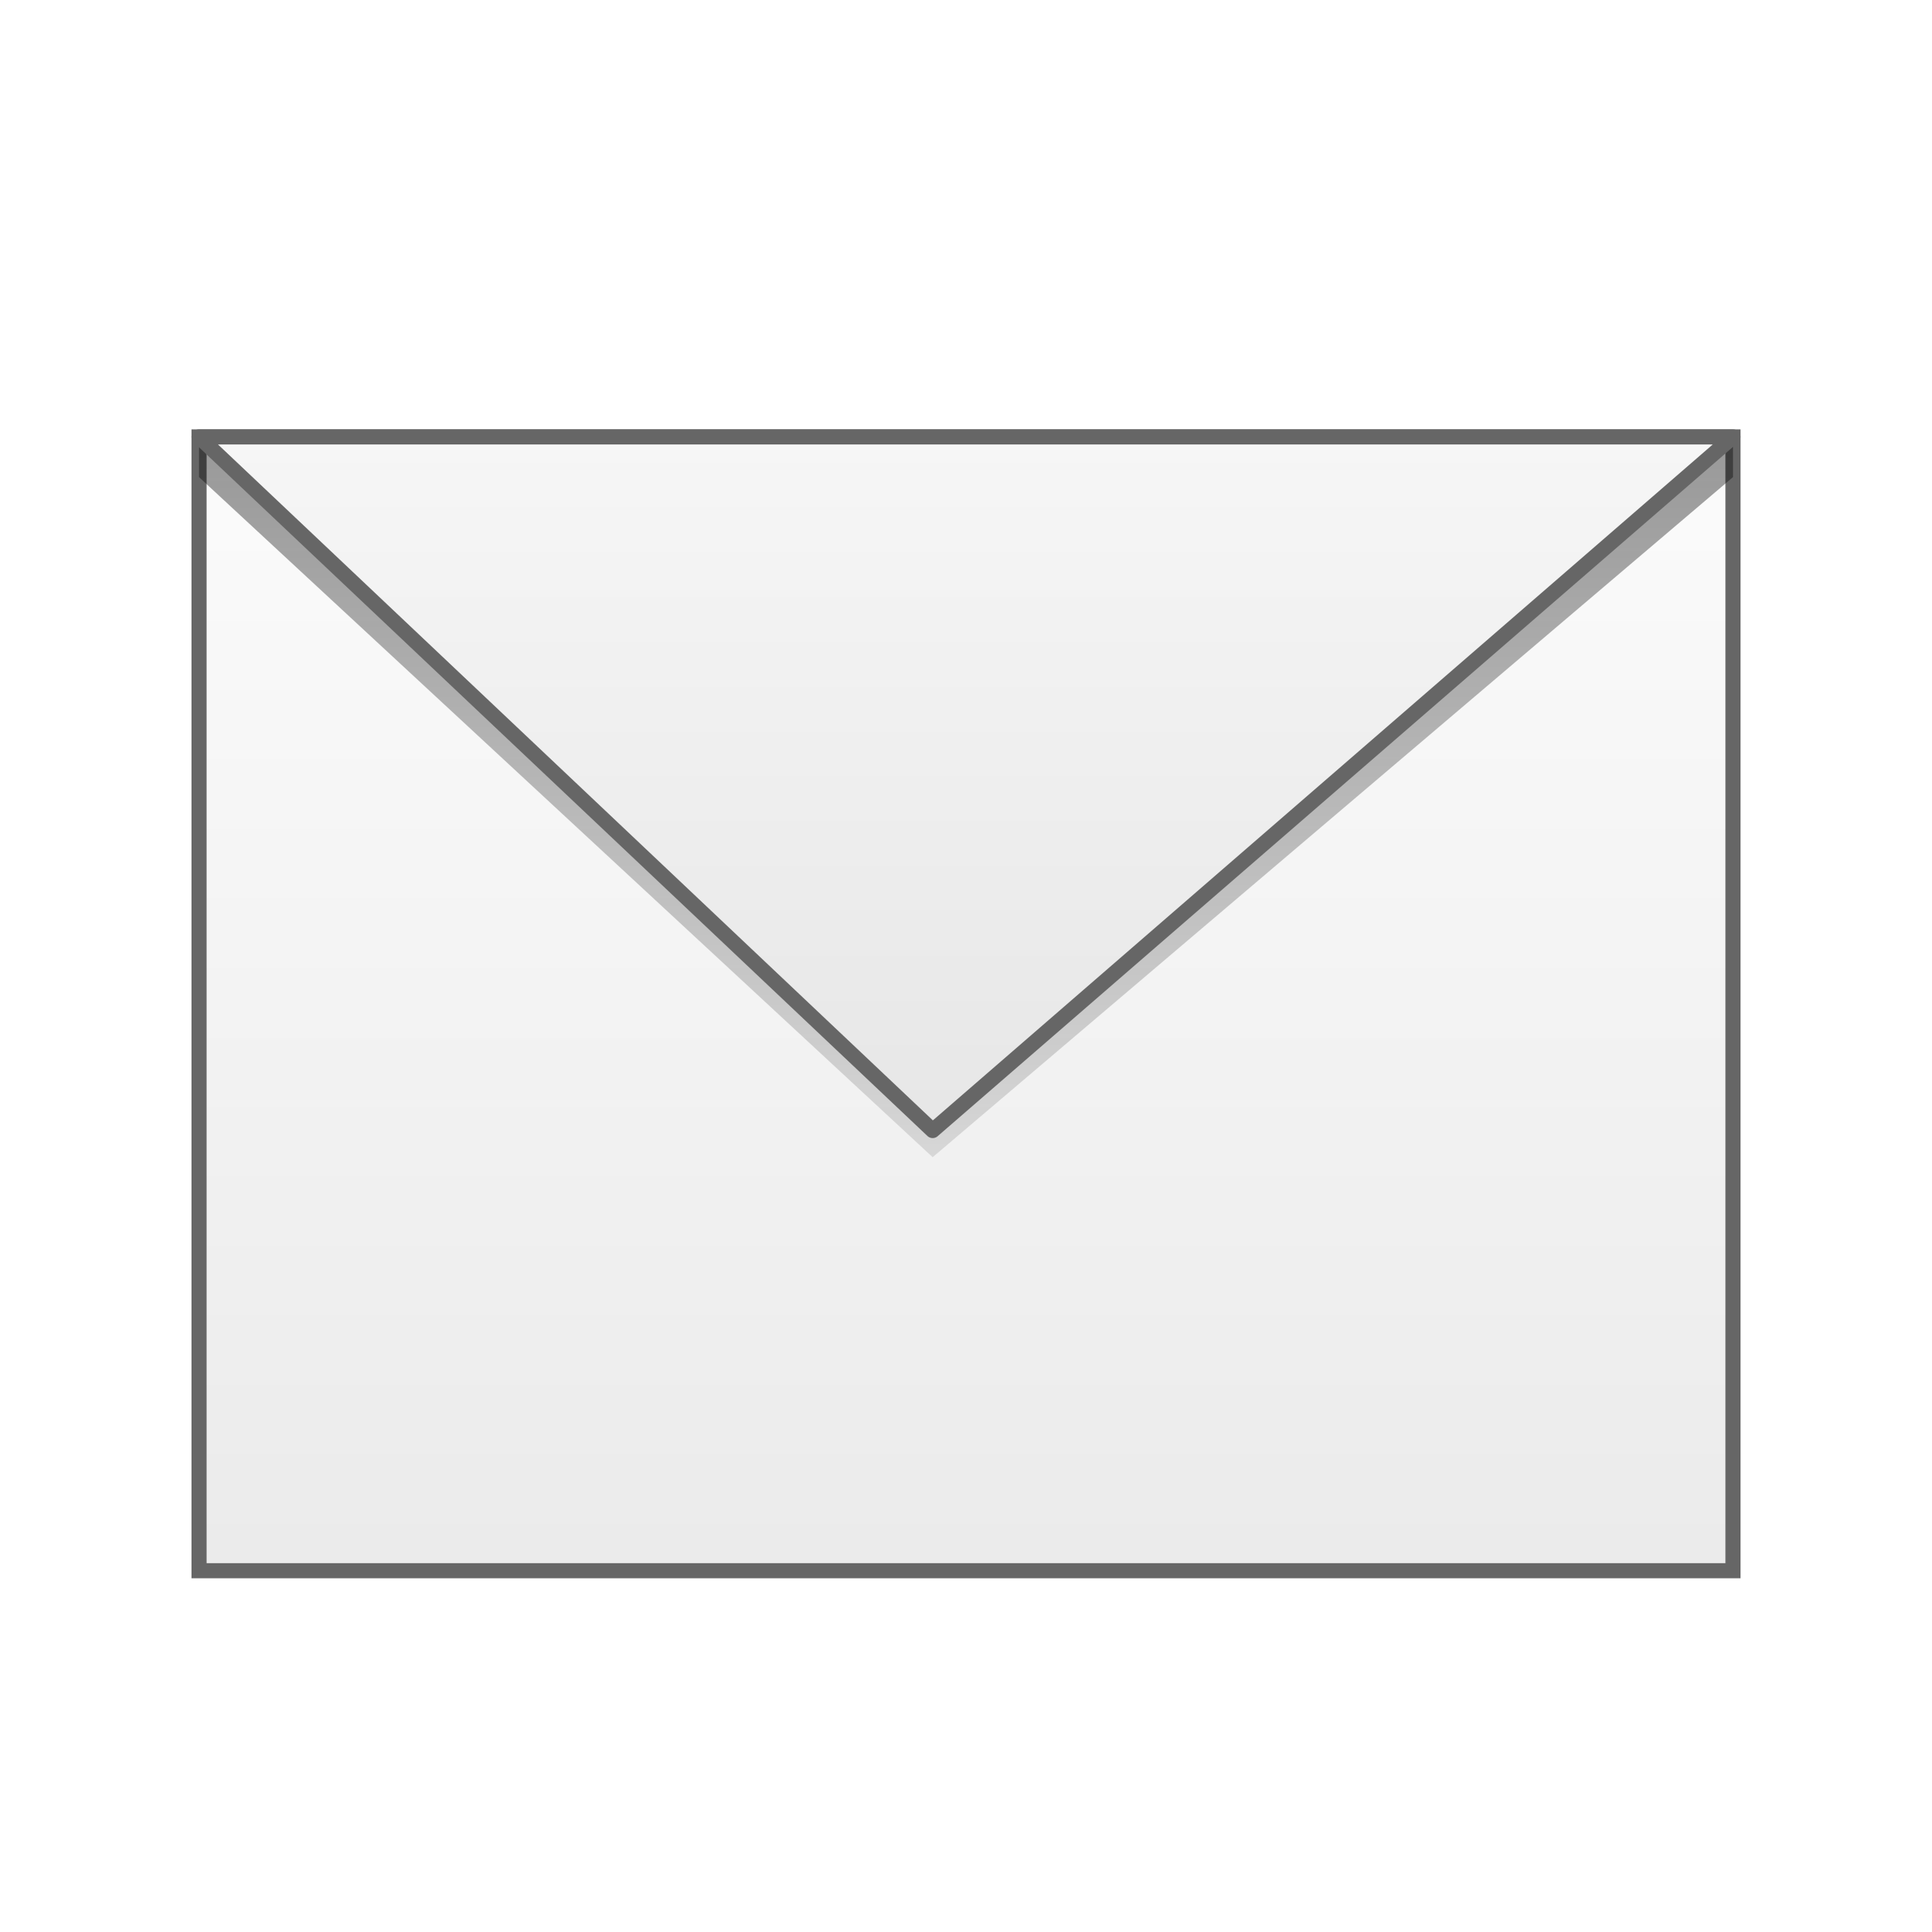 Envelope clipart green envelope. Closed icons png free